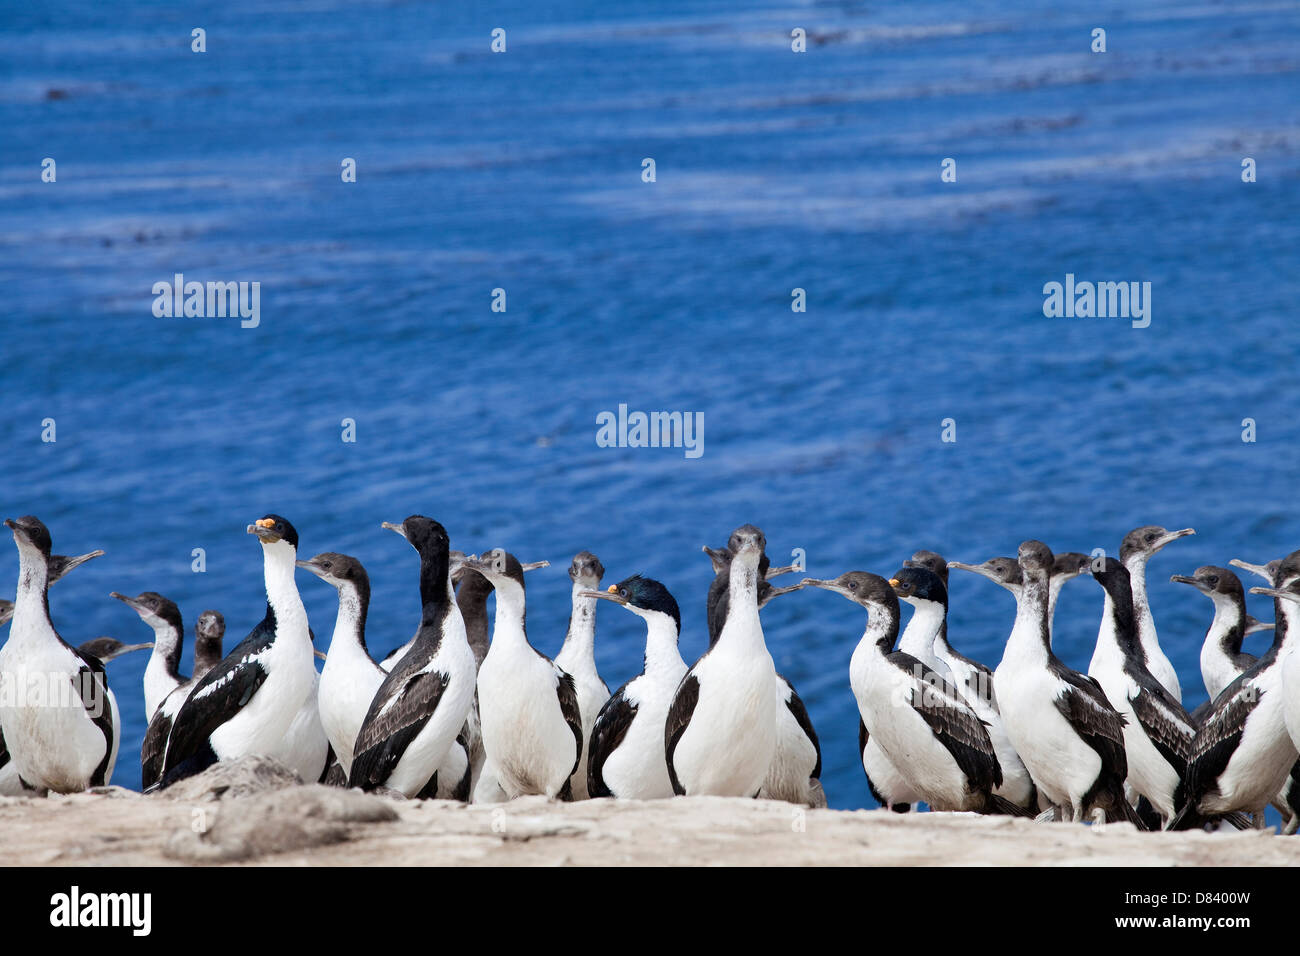 Kormoran; Cormoran real; king cormorant; phalacrocorax albiventer - Stock Image